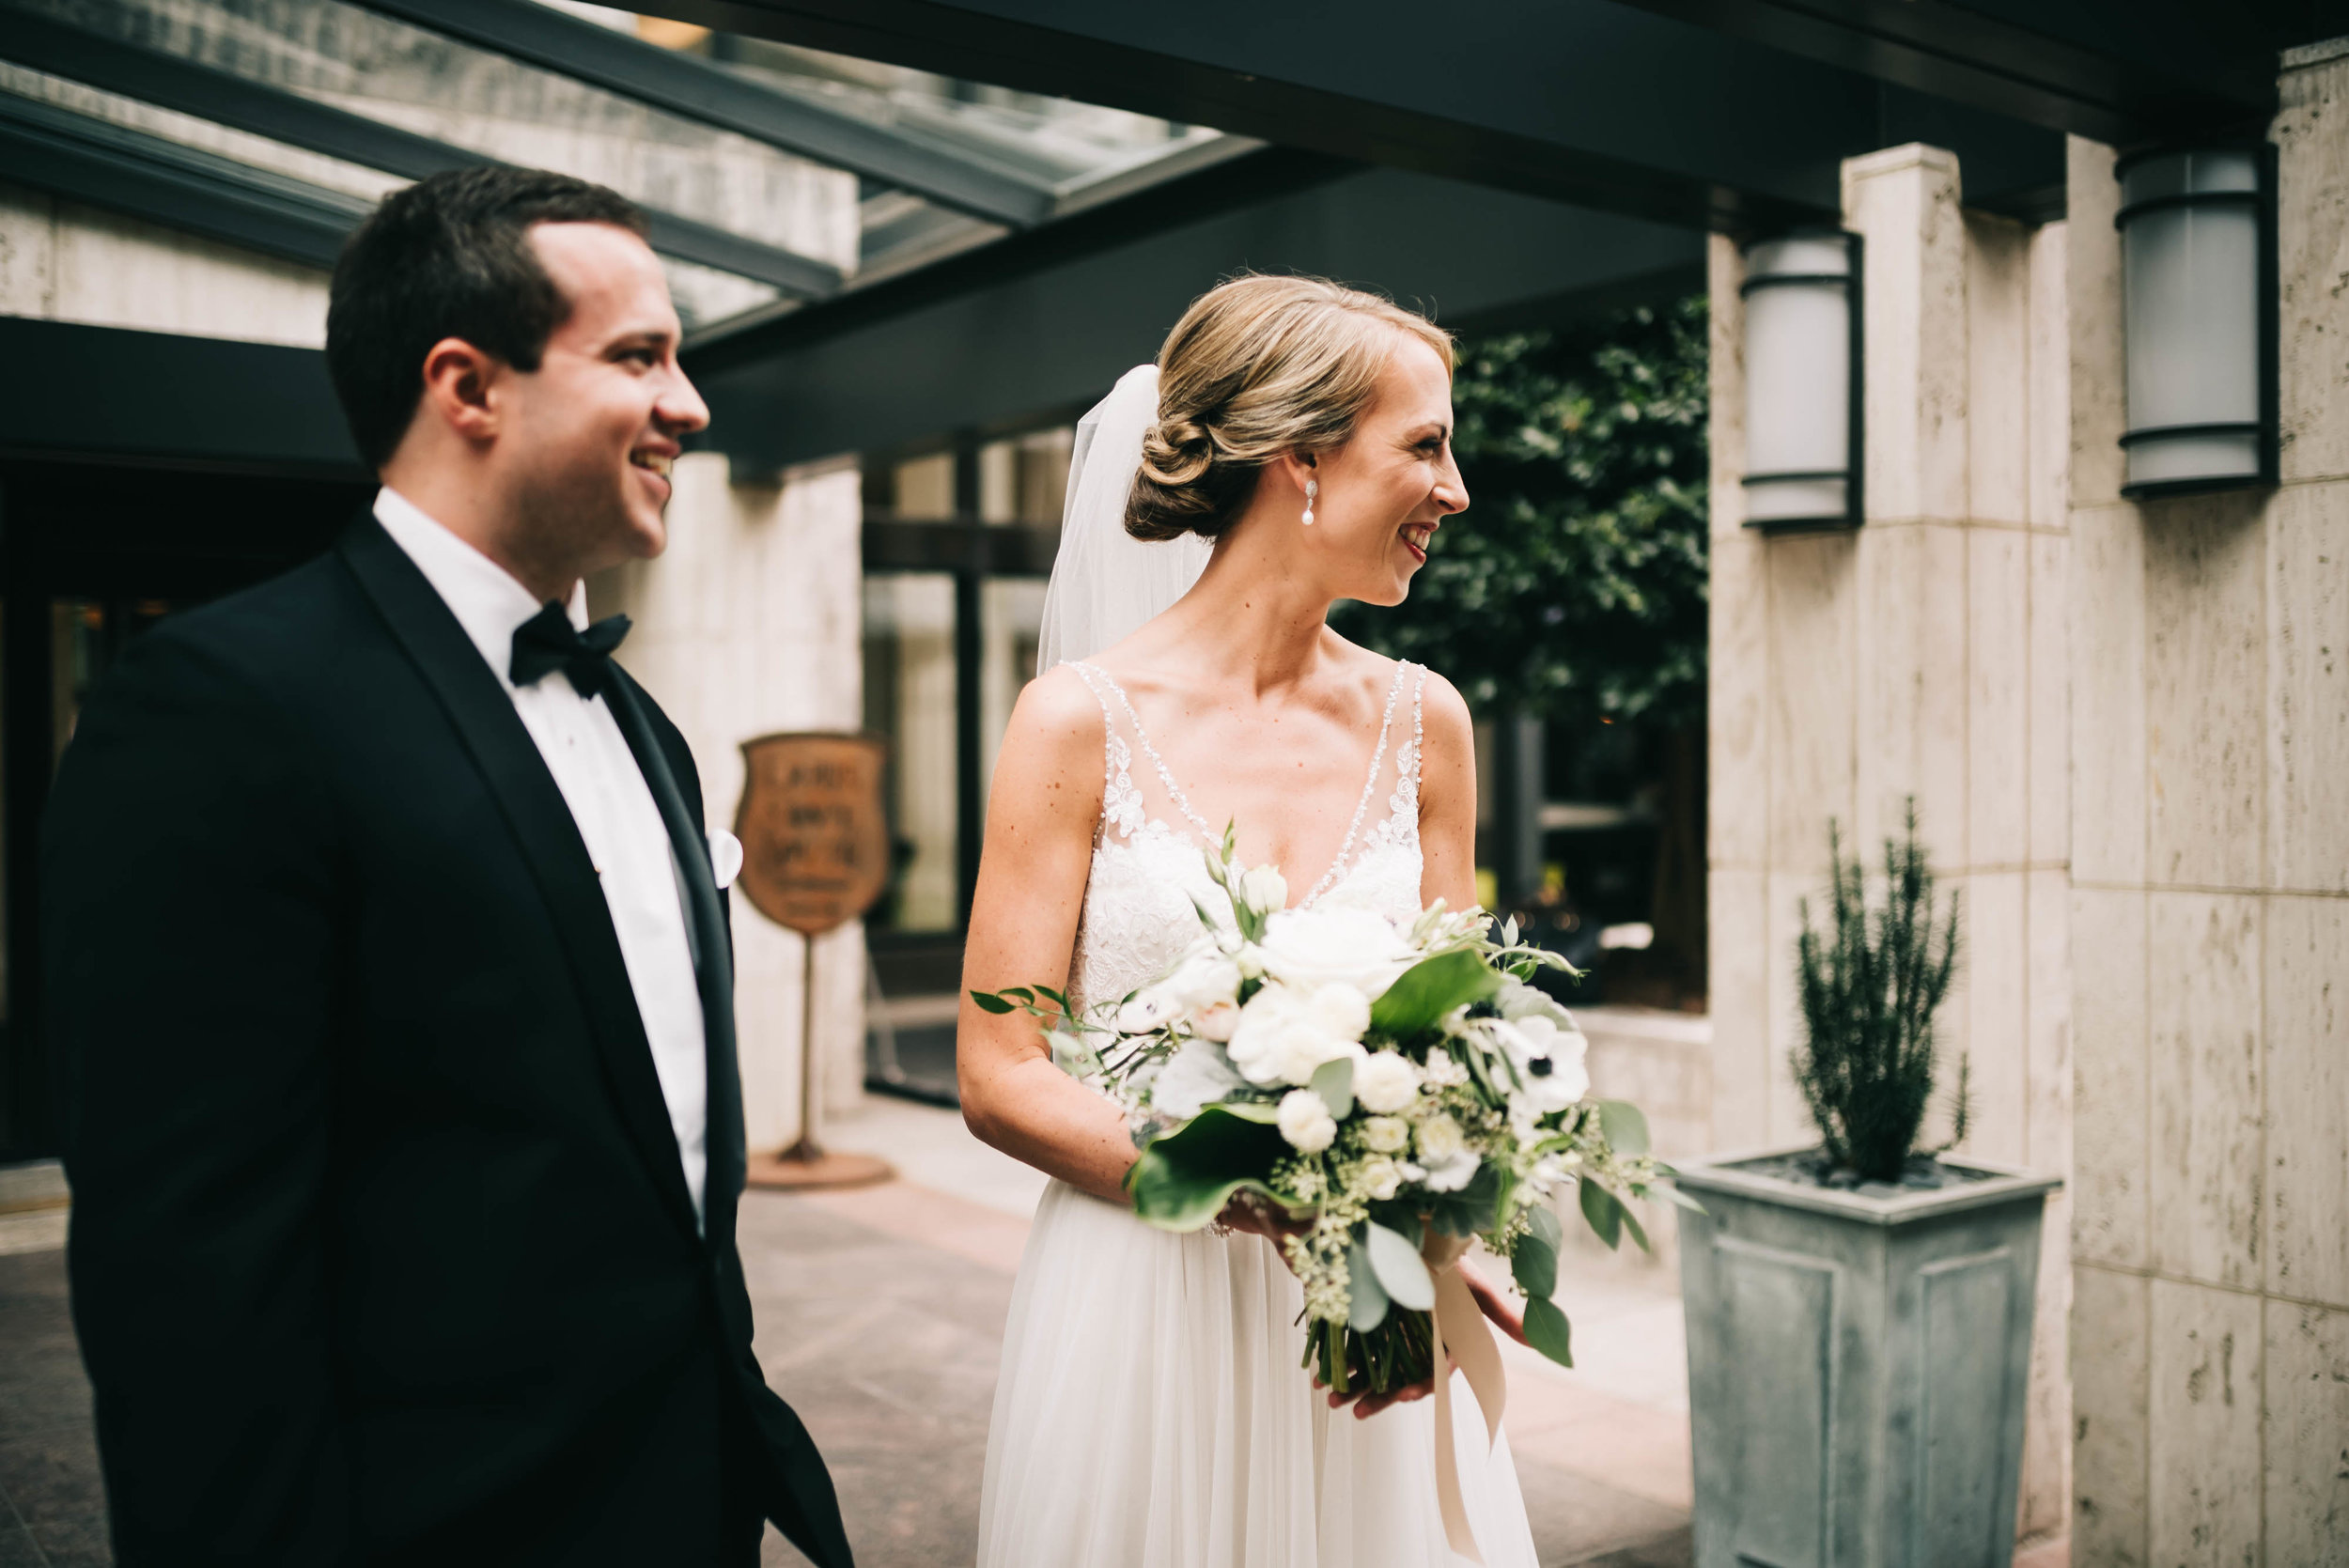 atlanta georgia midtown modern timeless nontraditional wedding photographer-271.jpg